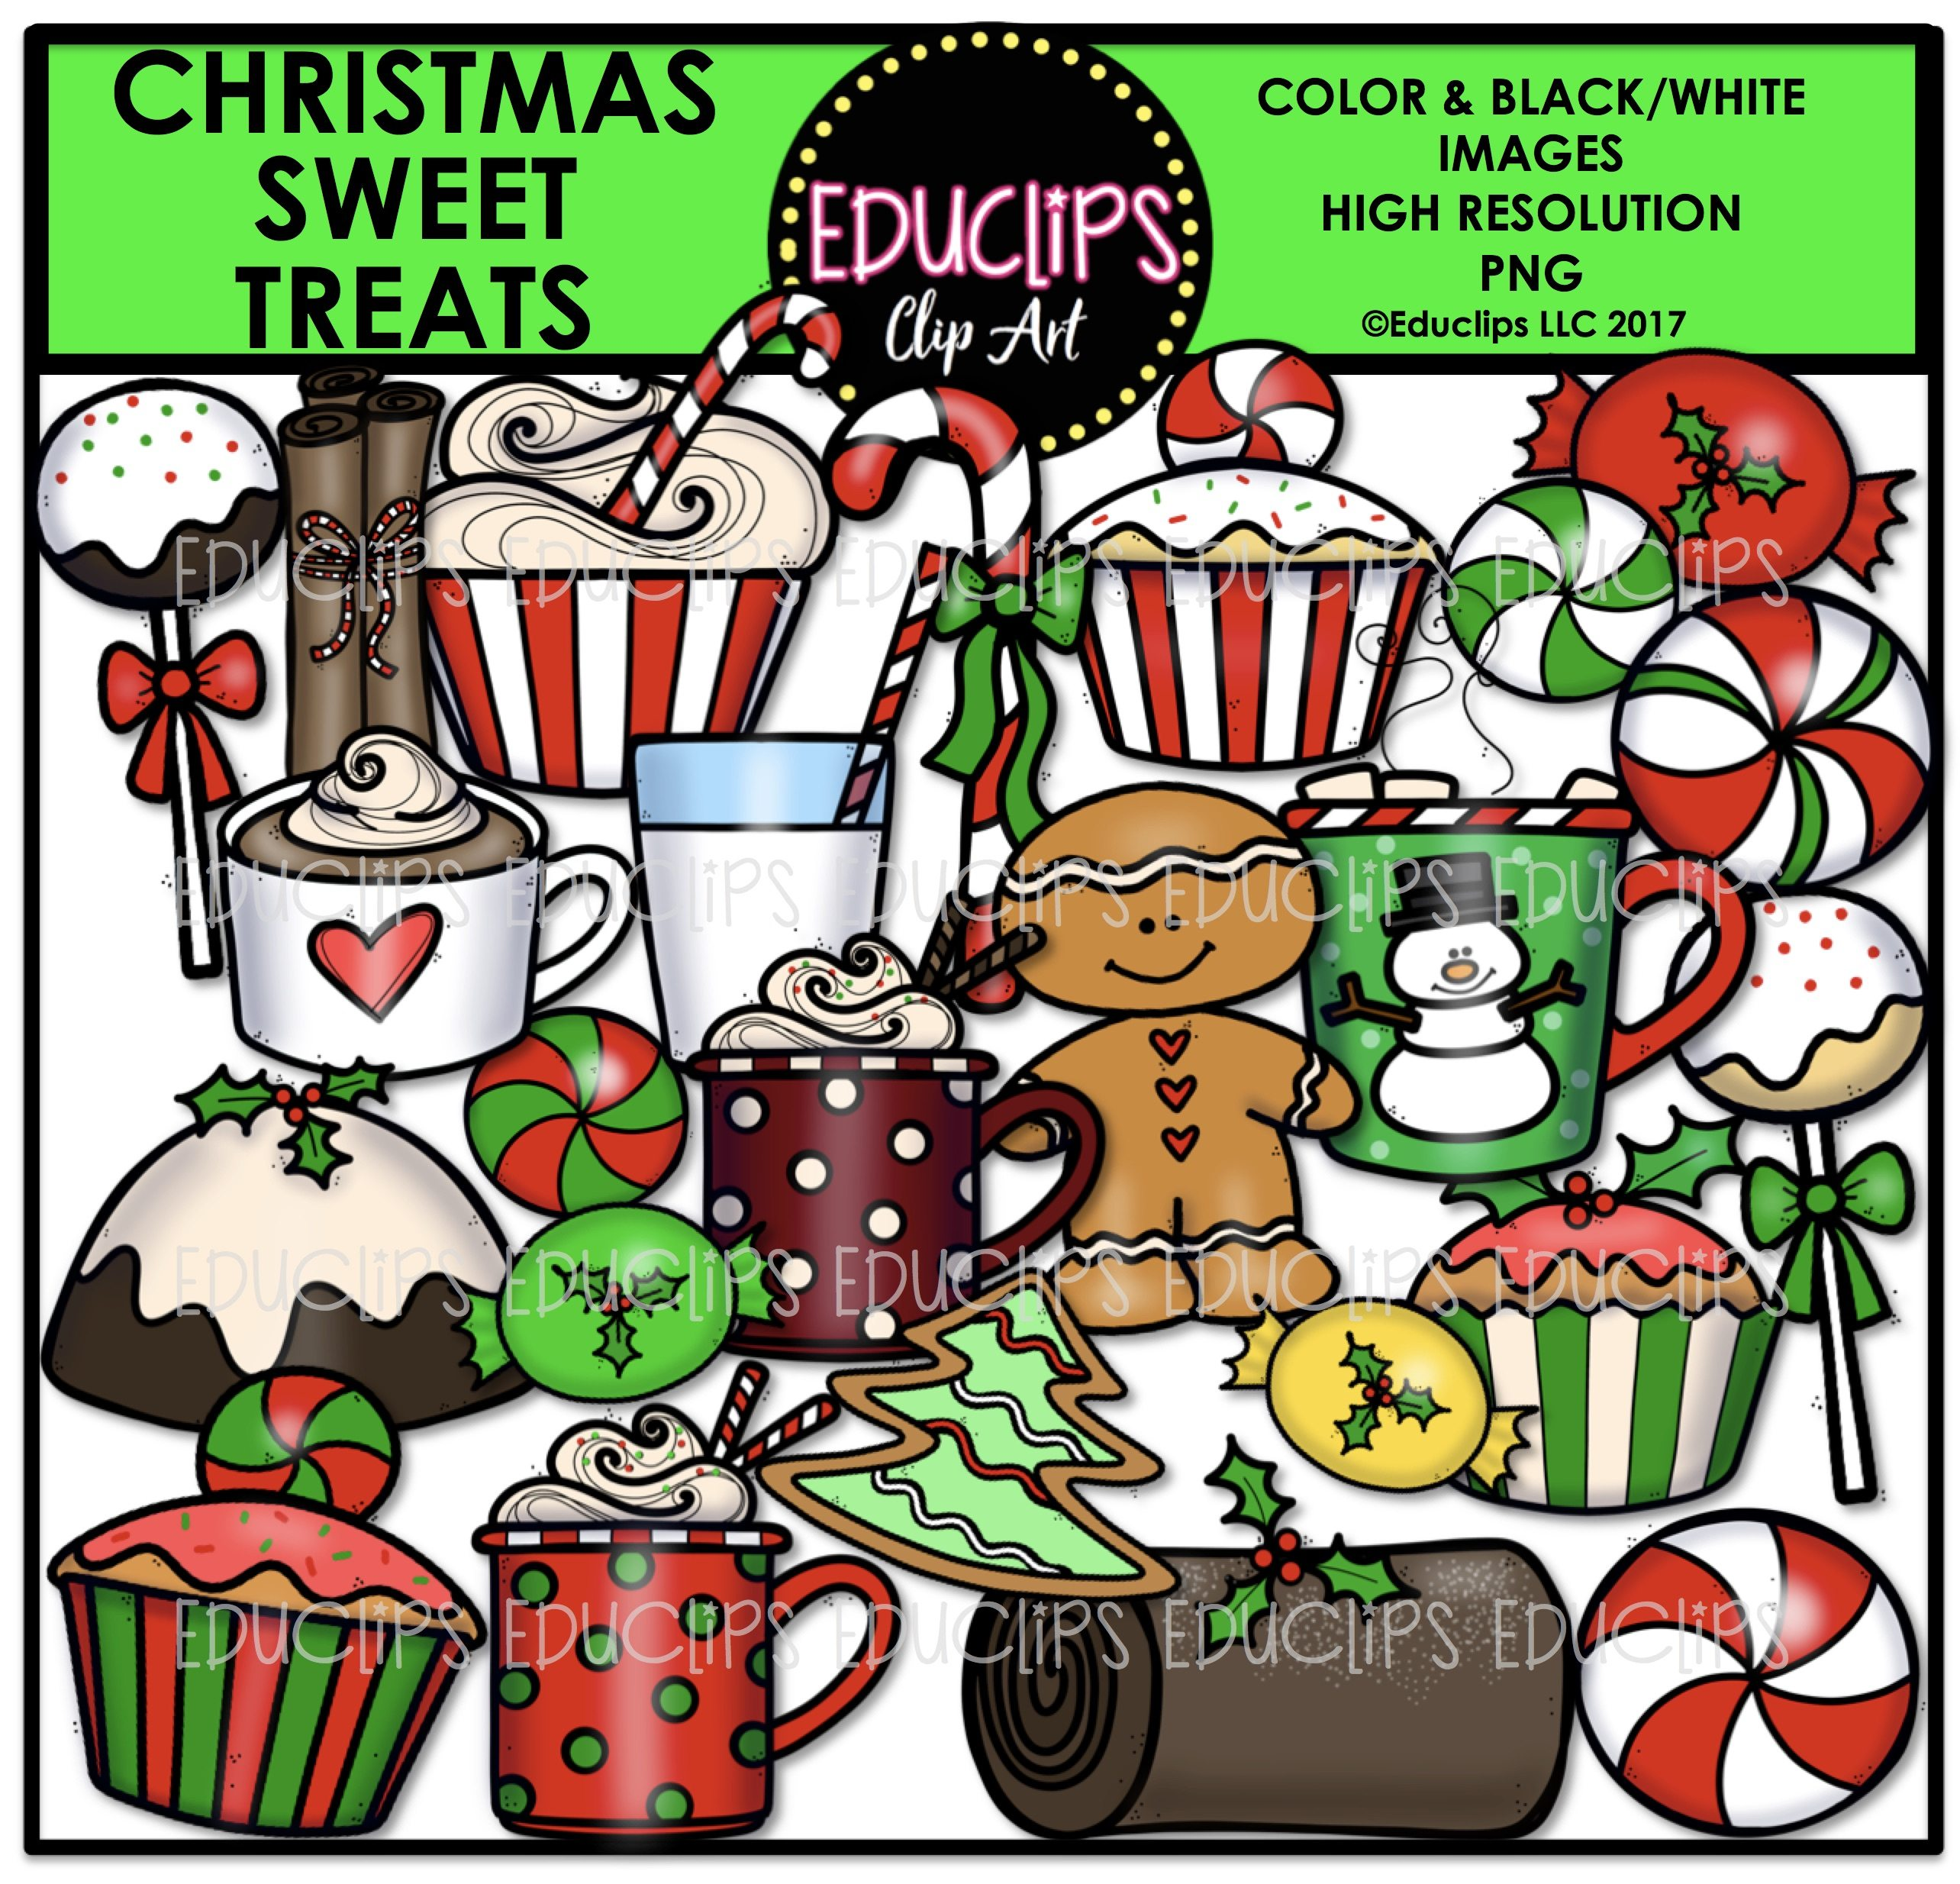 Sweet treats candy clipart images vector free Christmas Sweet Treats Clip Art Bundle (Color and B&W) vector free